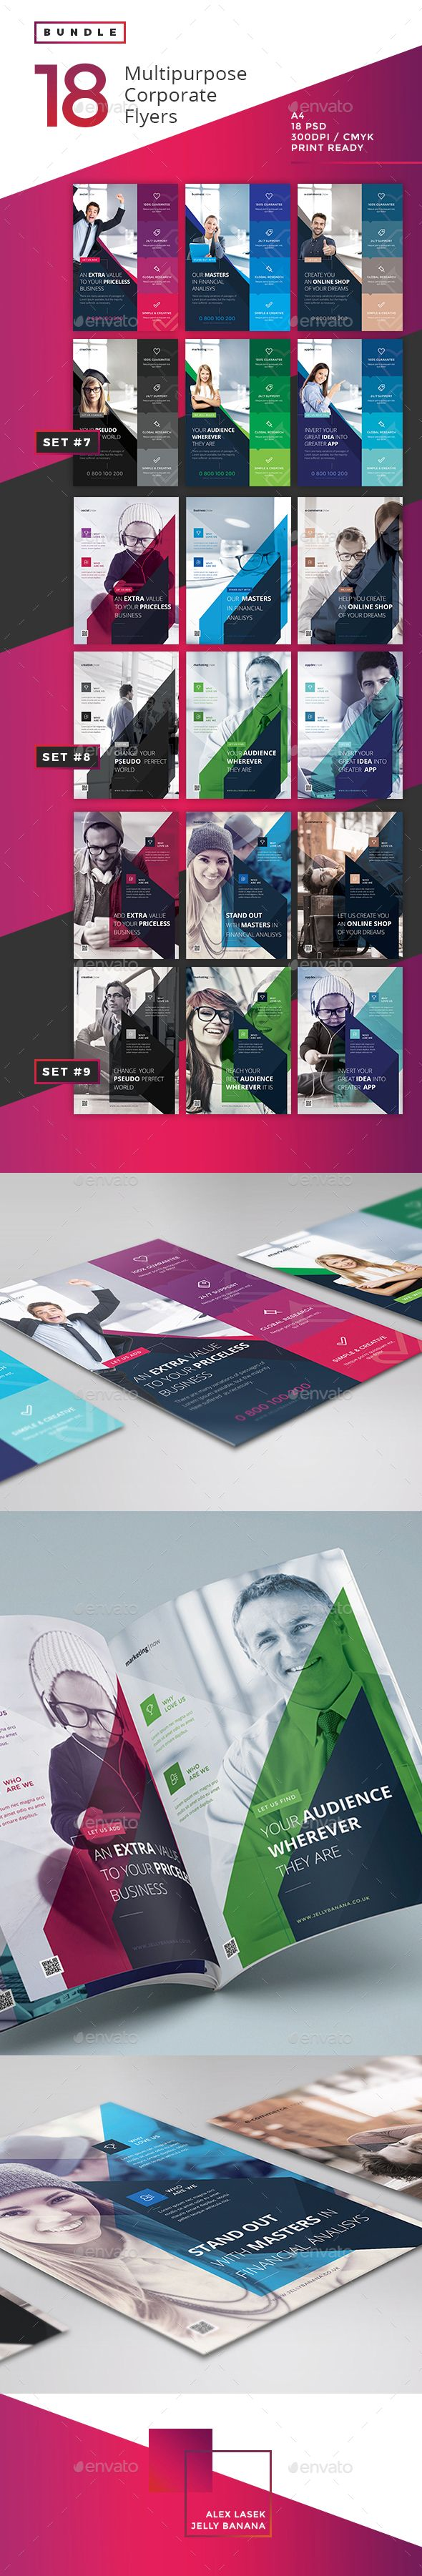 Corporate Flyer Templates PSD Bundle #design Download: http://graphicriver.net/item/corporate-flyer-bundle-3-18psd-/13343800?ref=ksioks